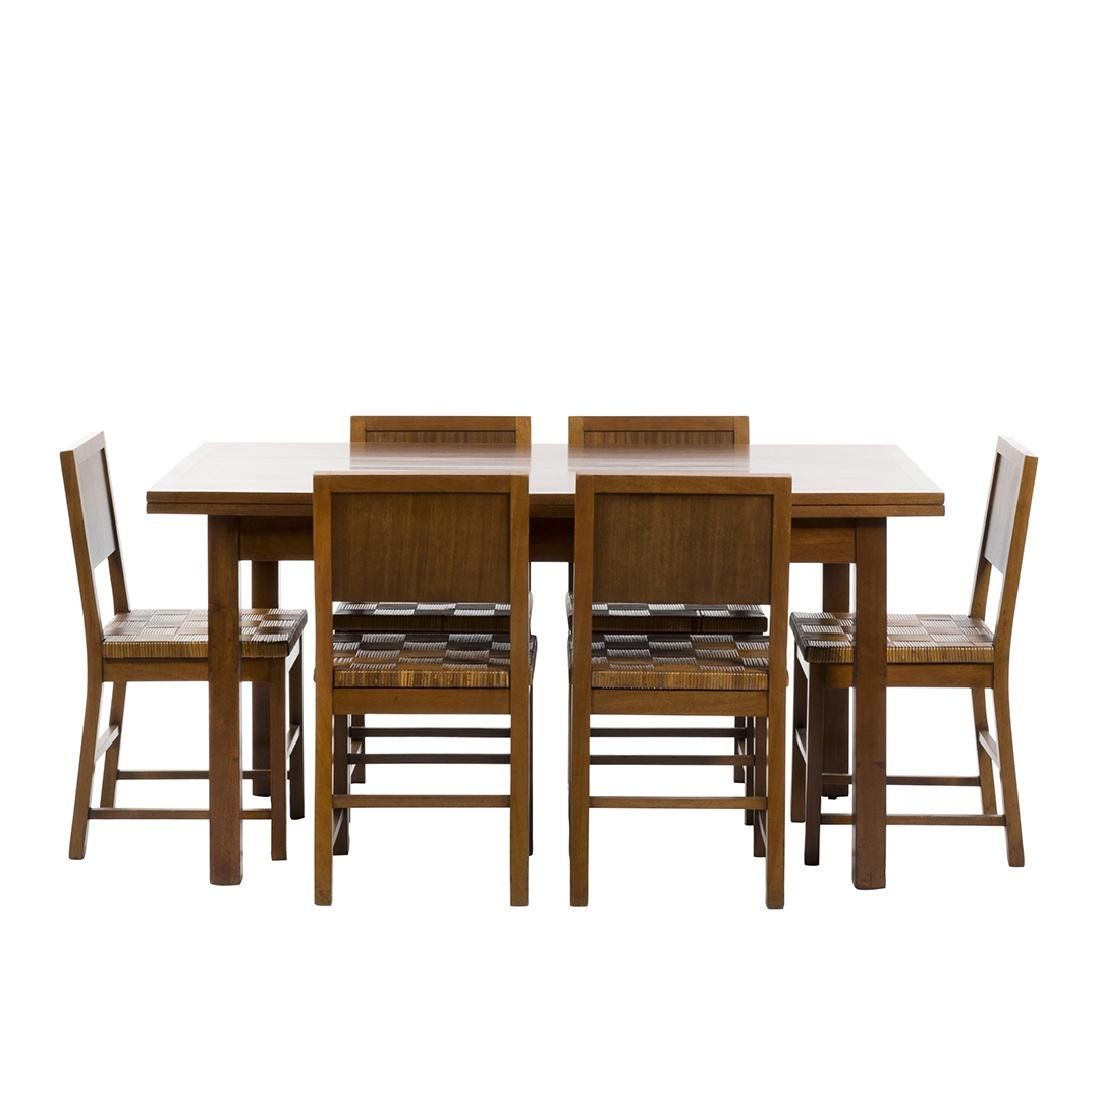 Francis Jourdain Dining Table and Chairs (7)